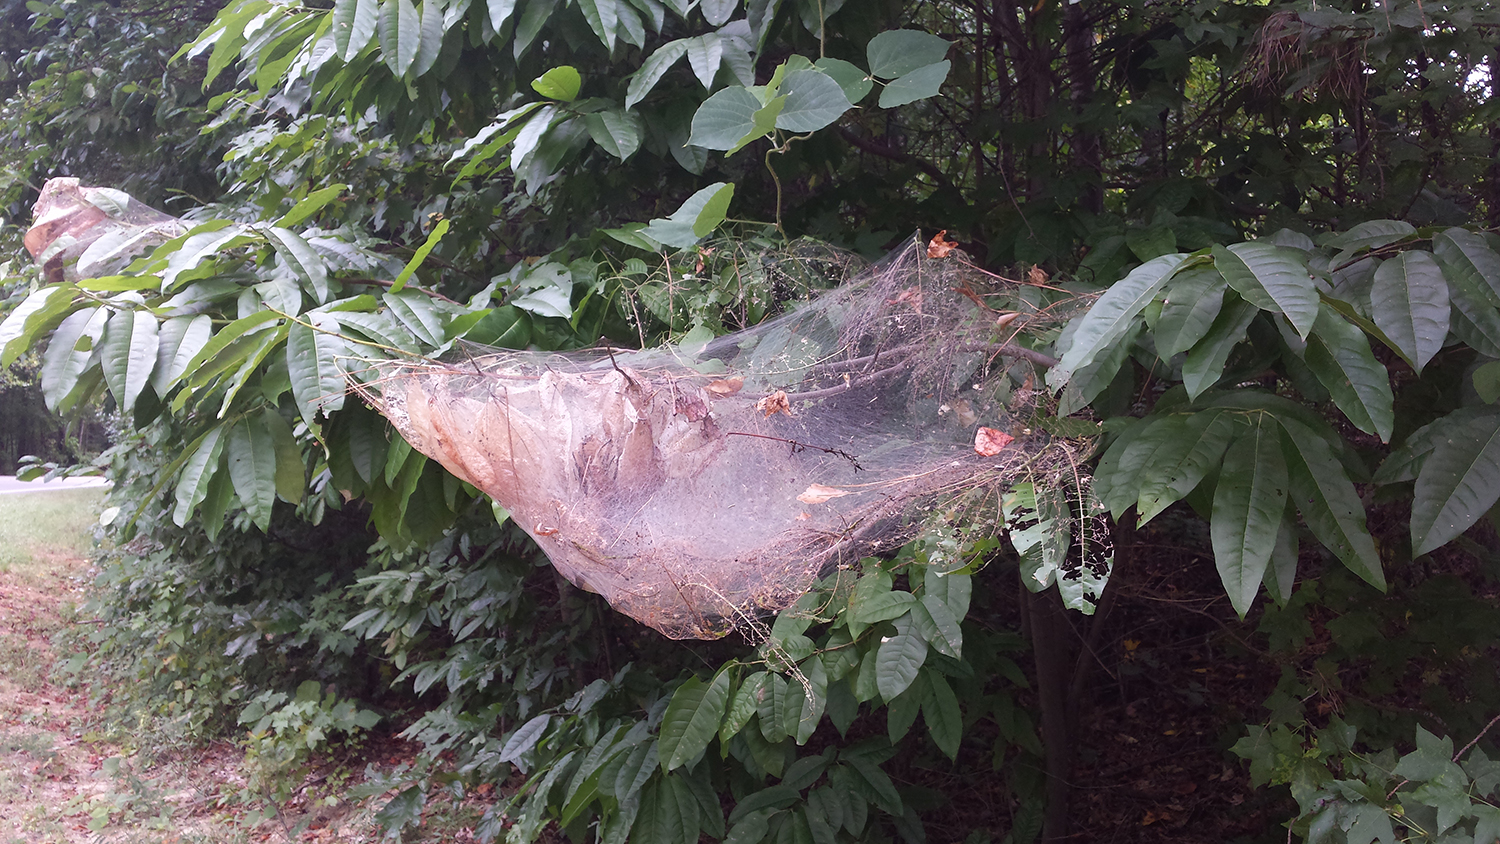 tent caterpillar web in tree